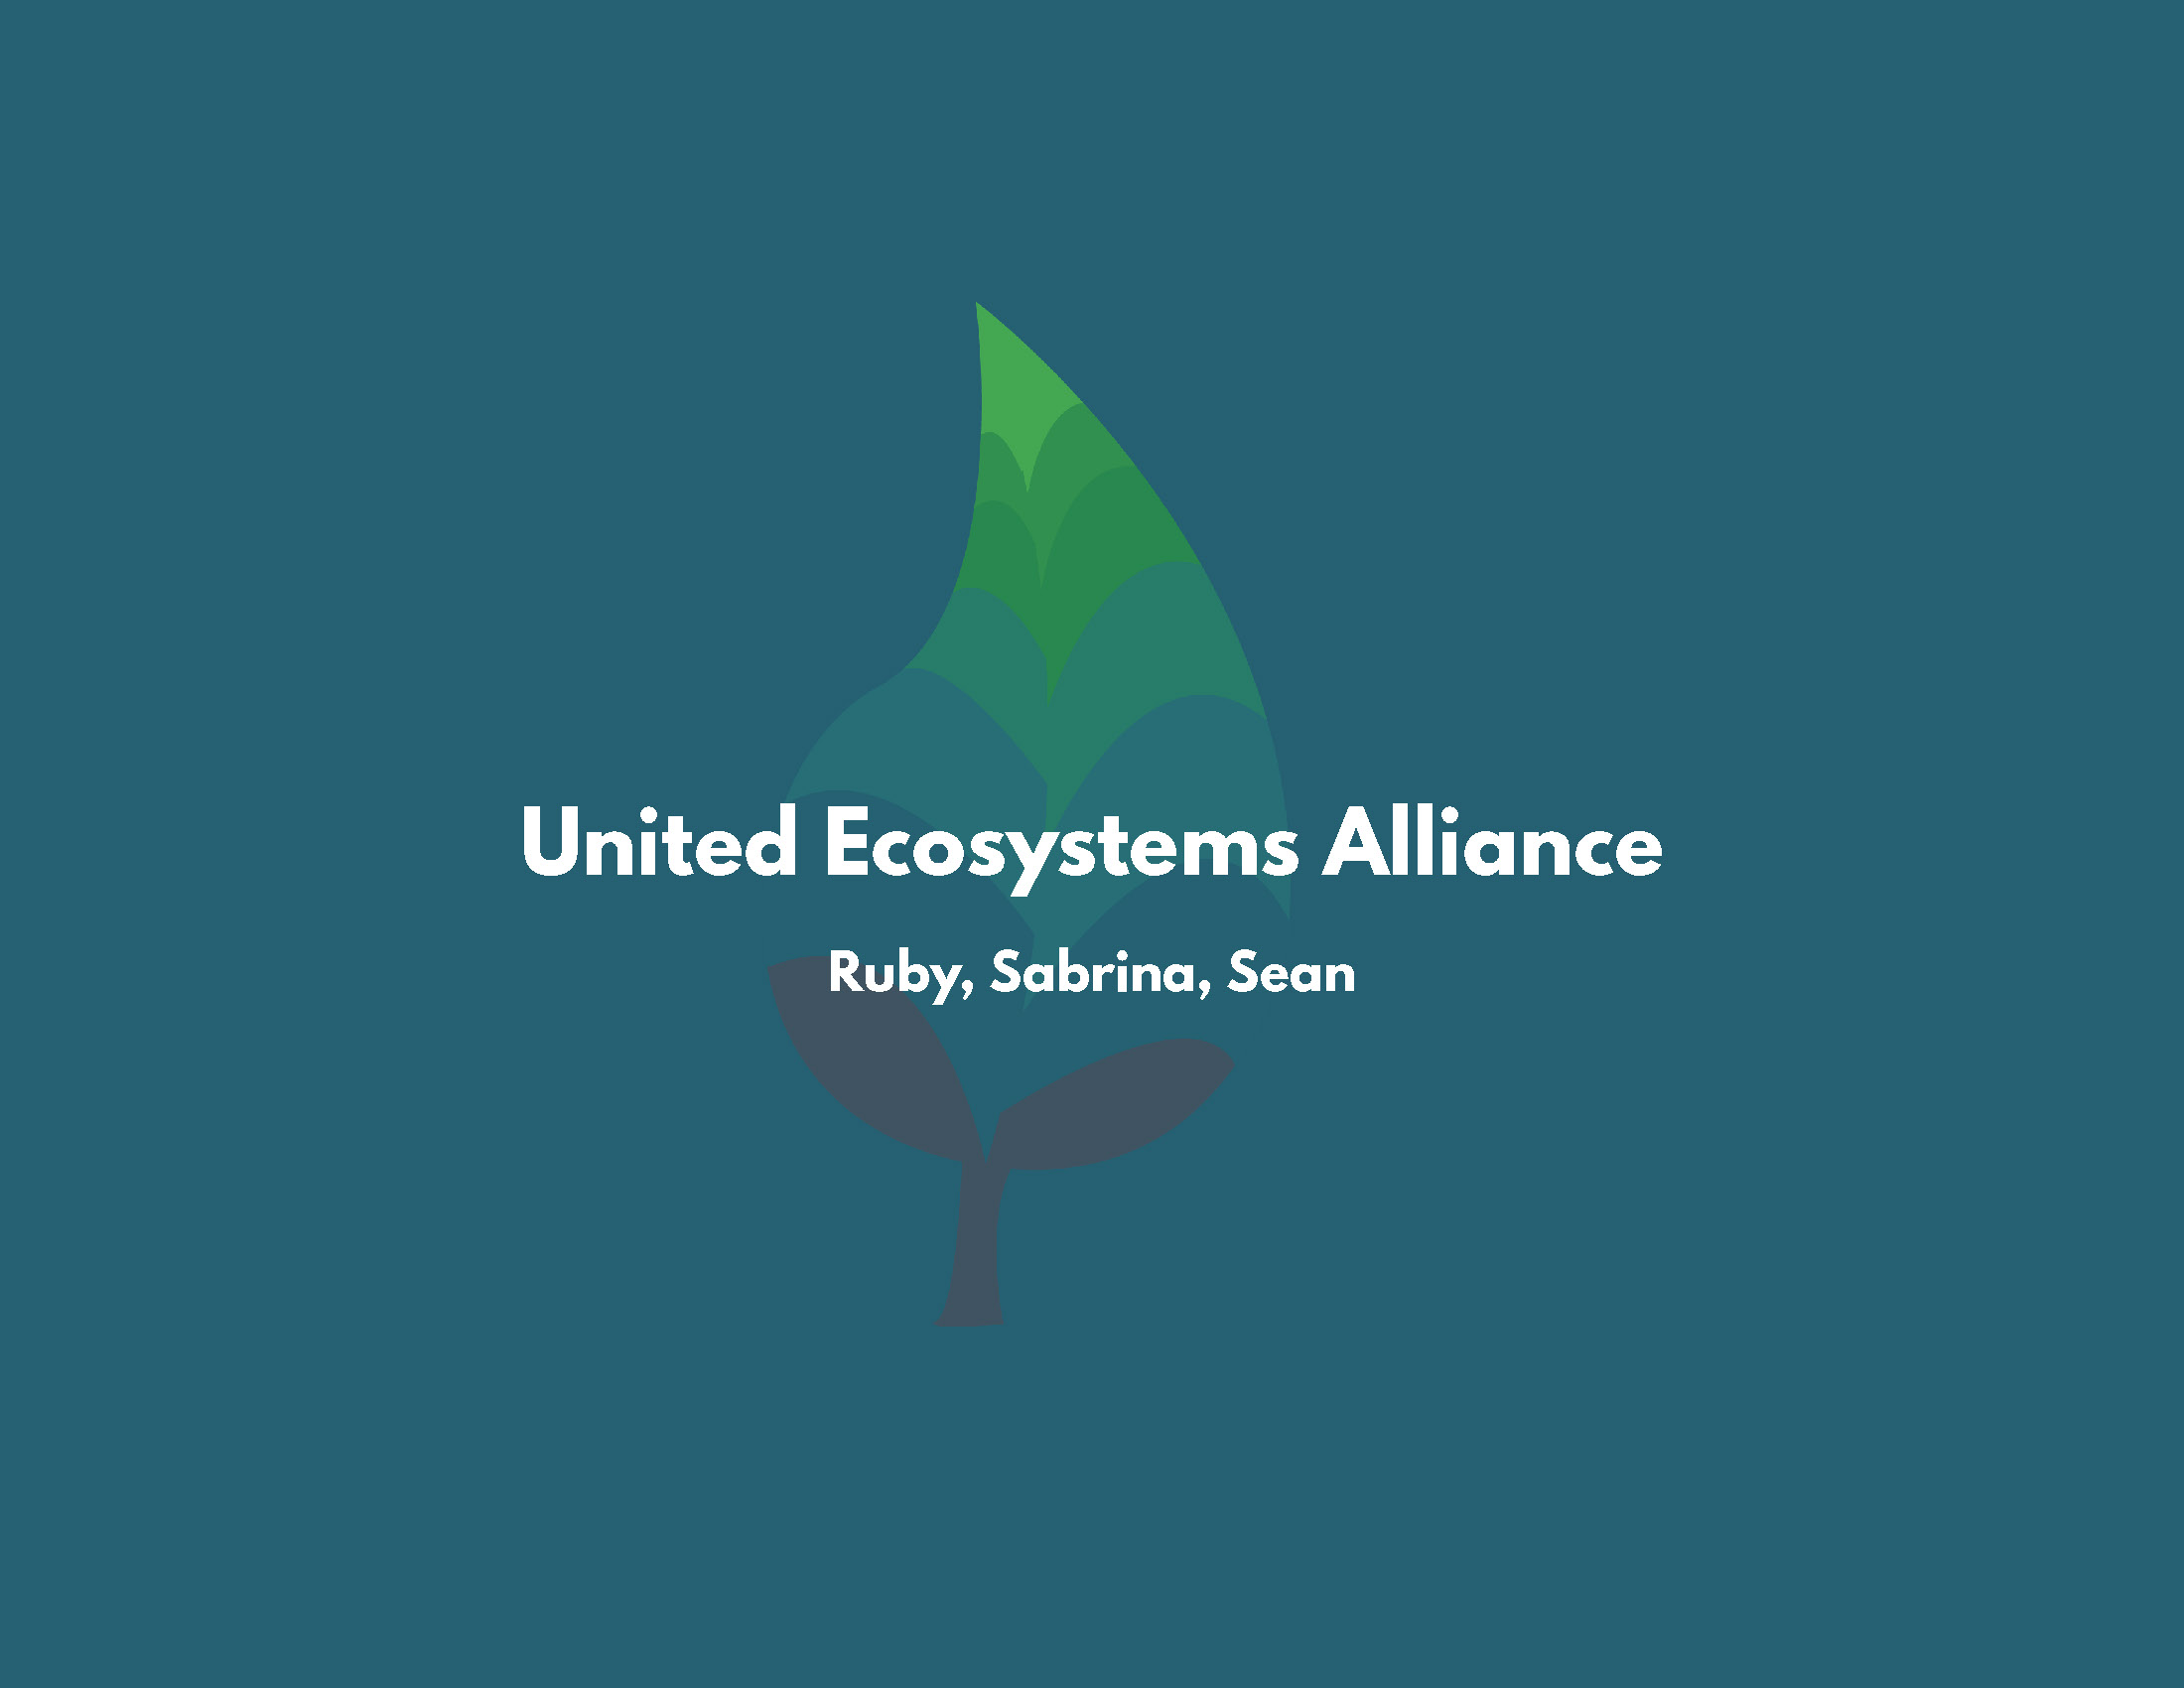 United Ecosystems Alliance